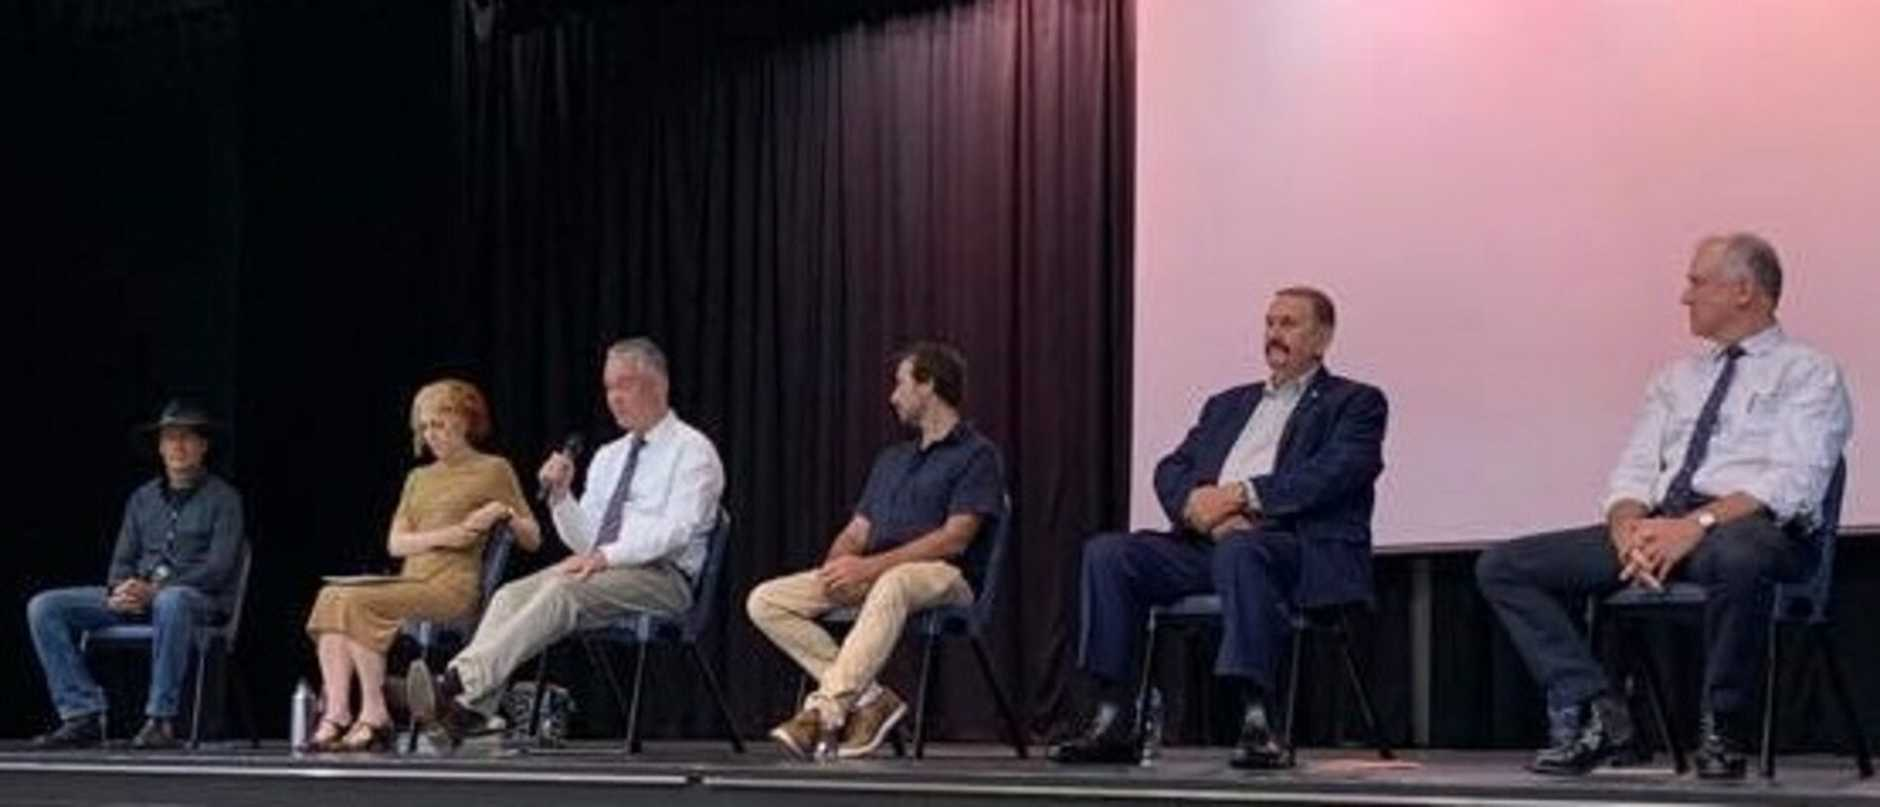 Candidates on stage at the Gympie state election debate.